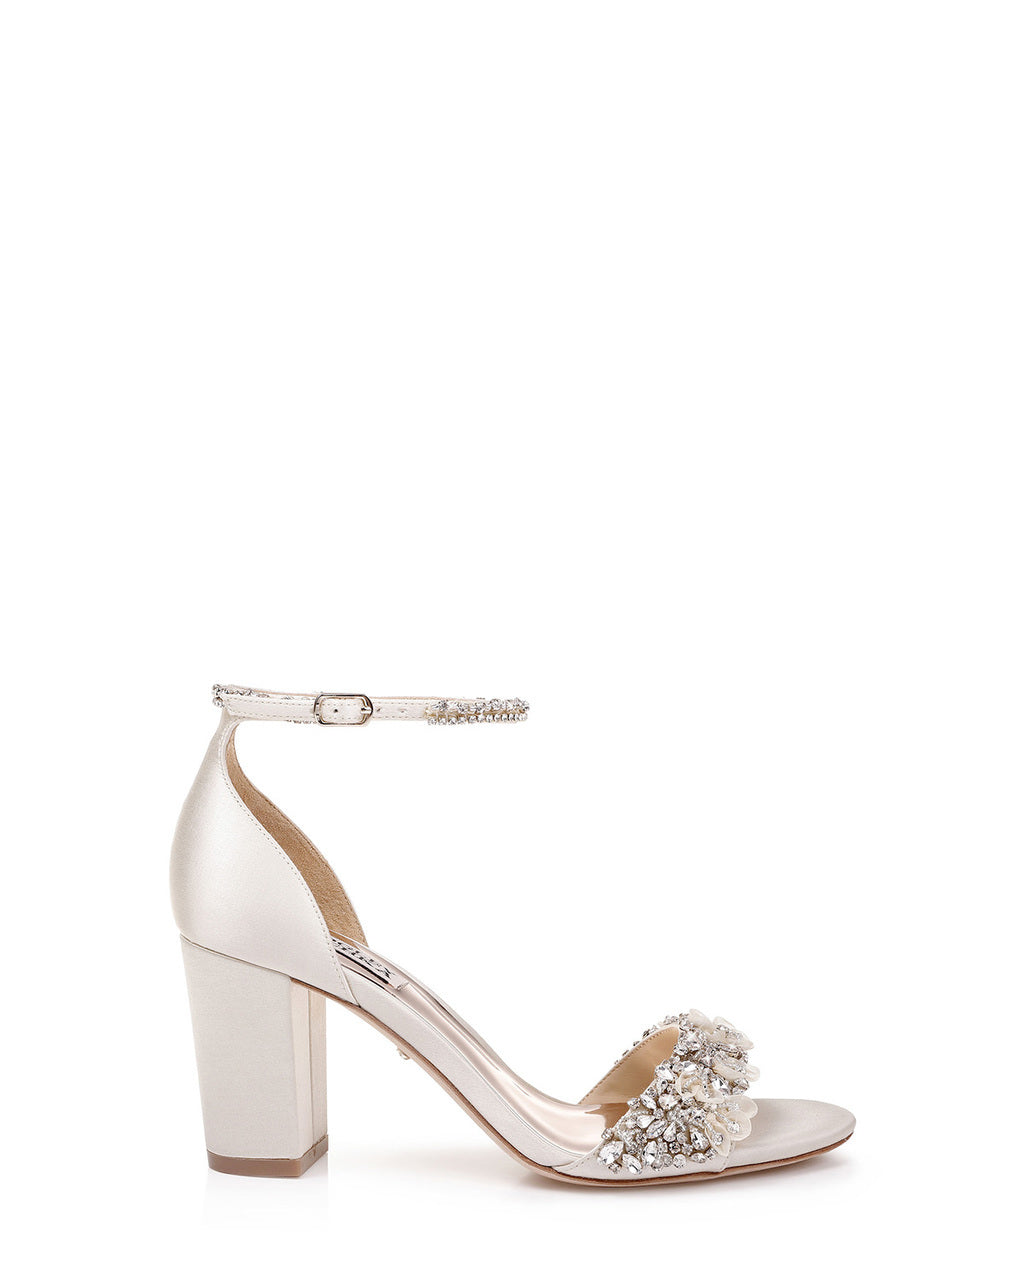 Finesse - New, Shoes, Badgley Mischka - Eternal Bridal